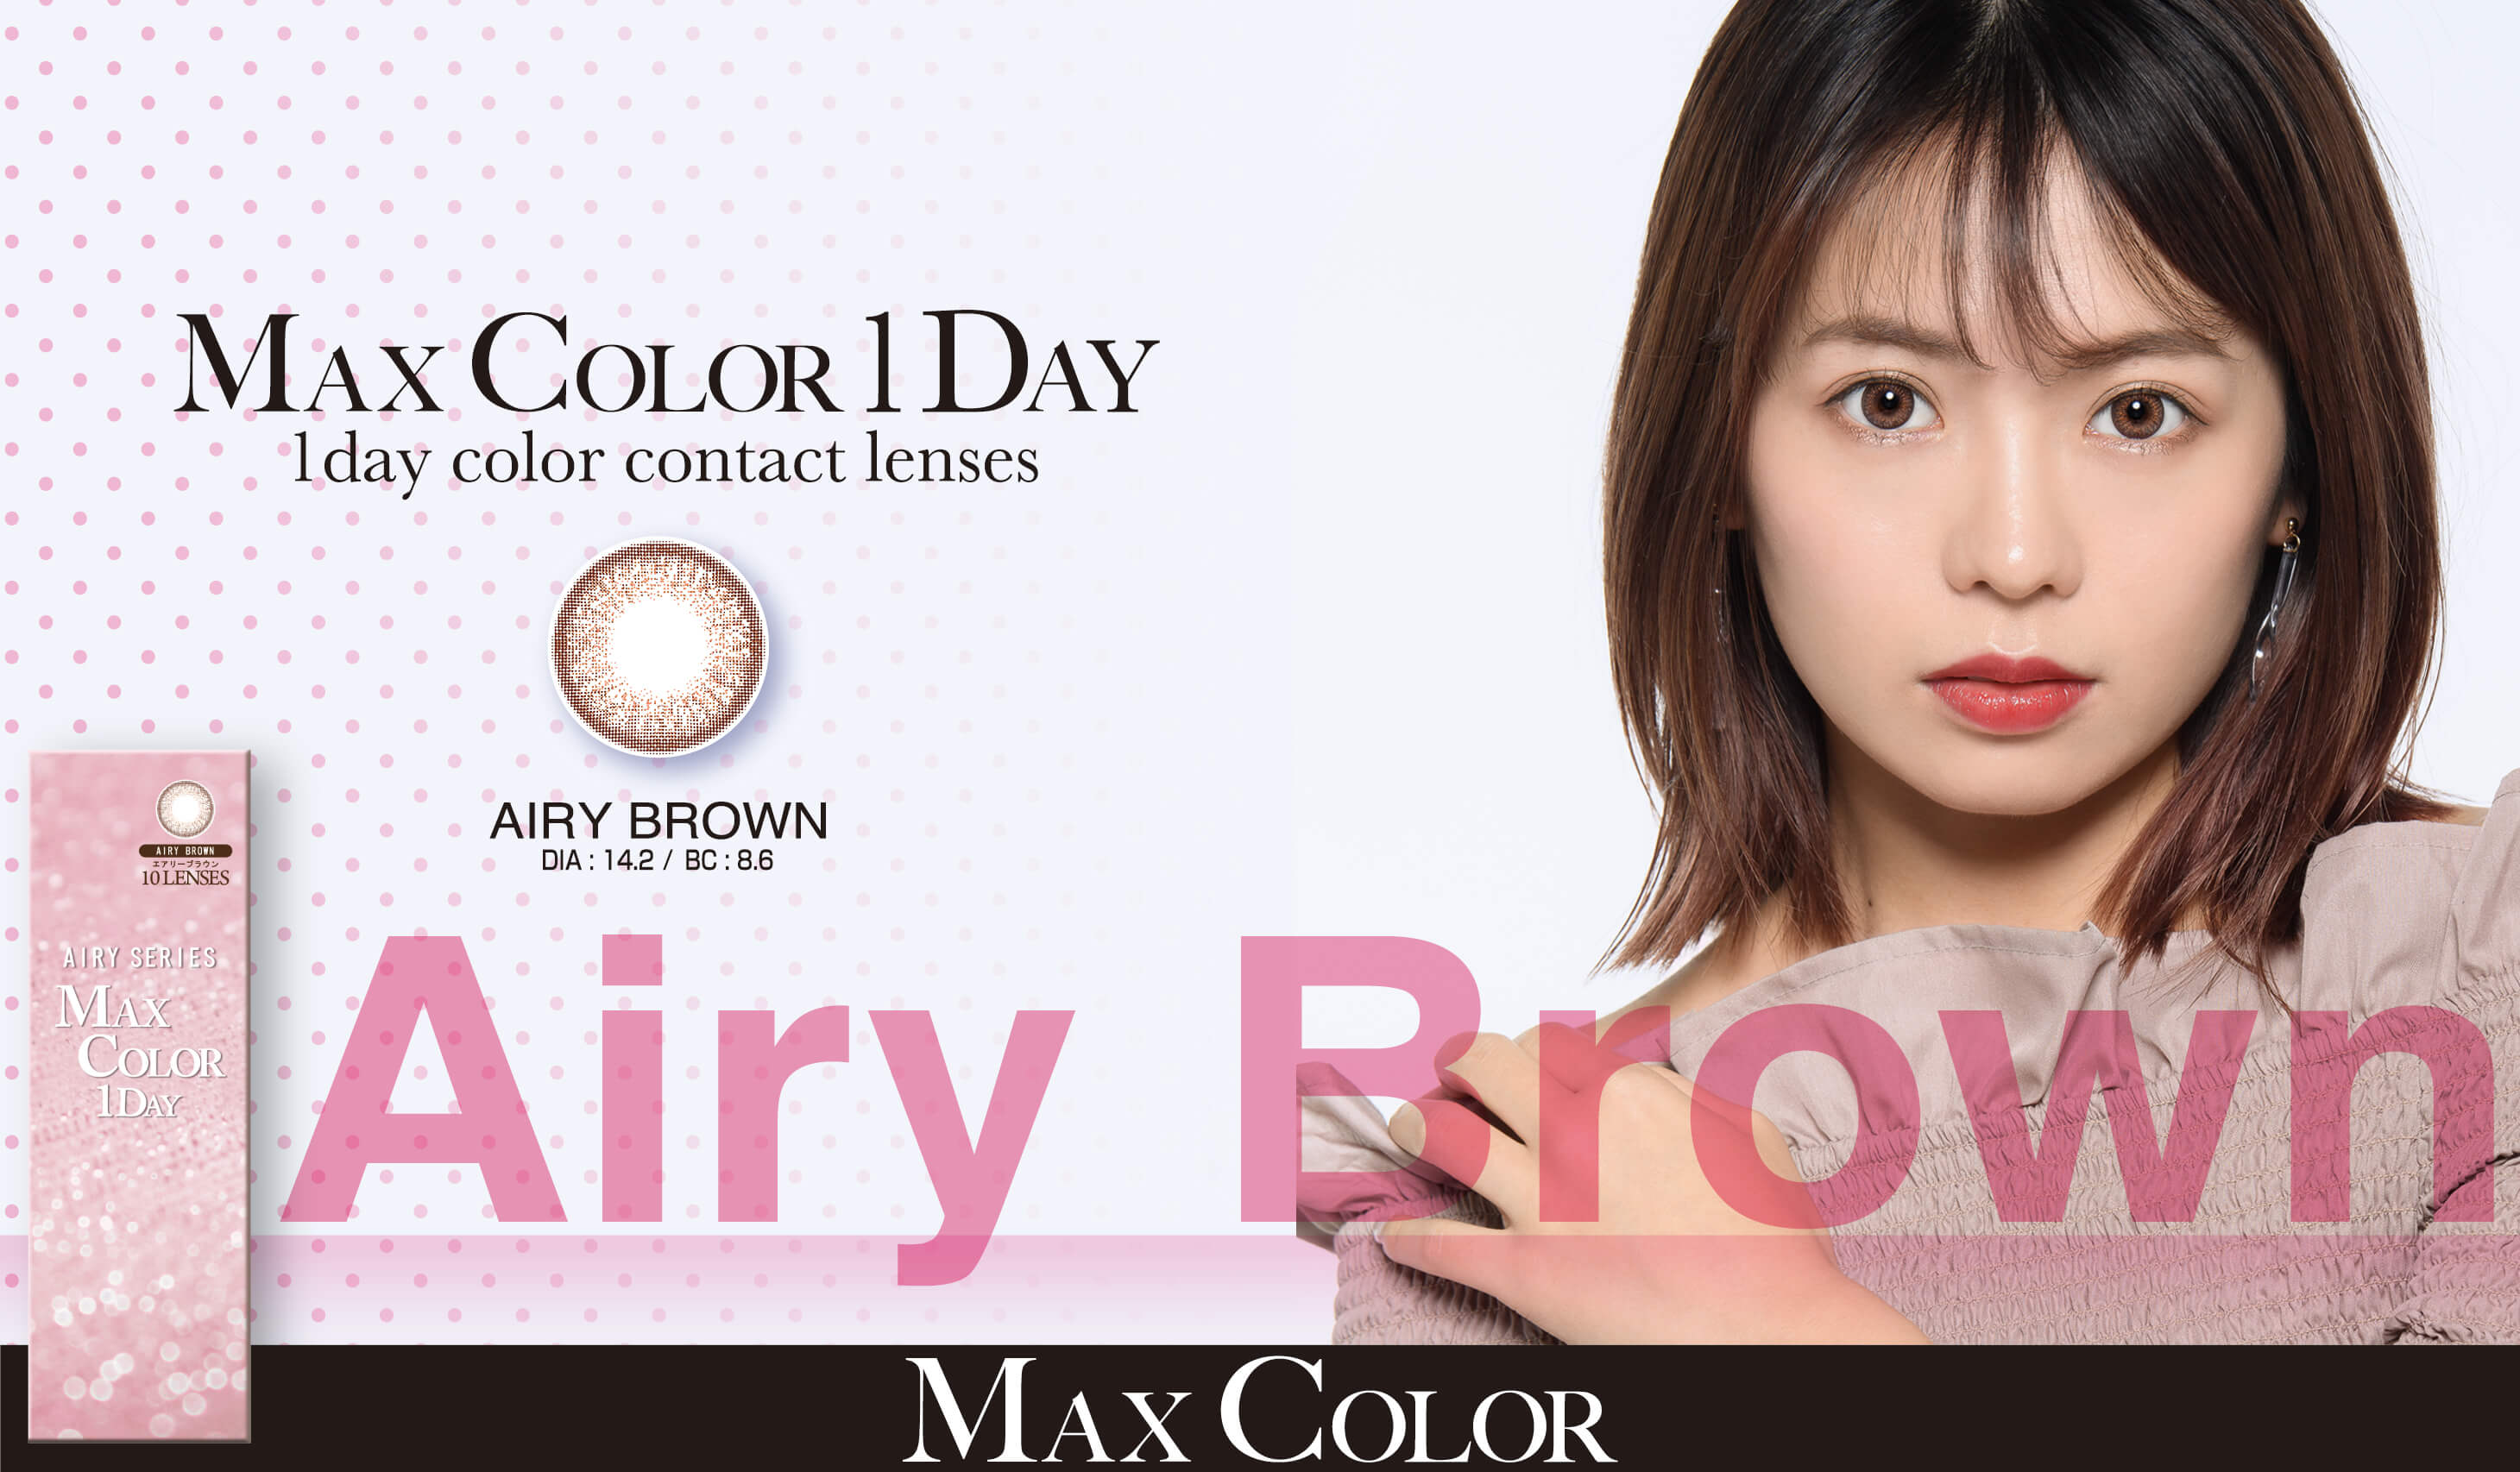 MaxColor1day-マックスカラーワンデー|【鈴木あや・寿るい・筒井結愛】プロデュースカラコン|MAX COLOR 1DAY 1day color contact lenses AIRY BROWN DIA:14.2/BC:8.6